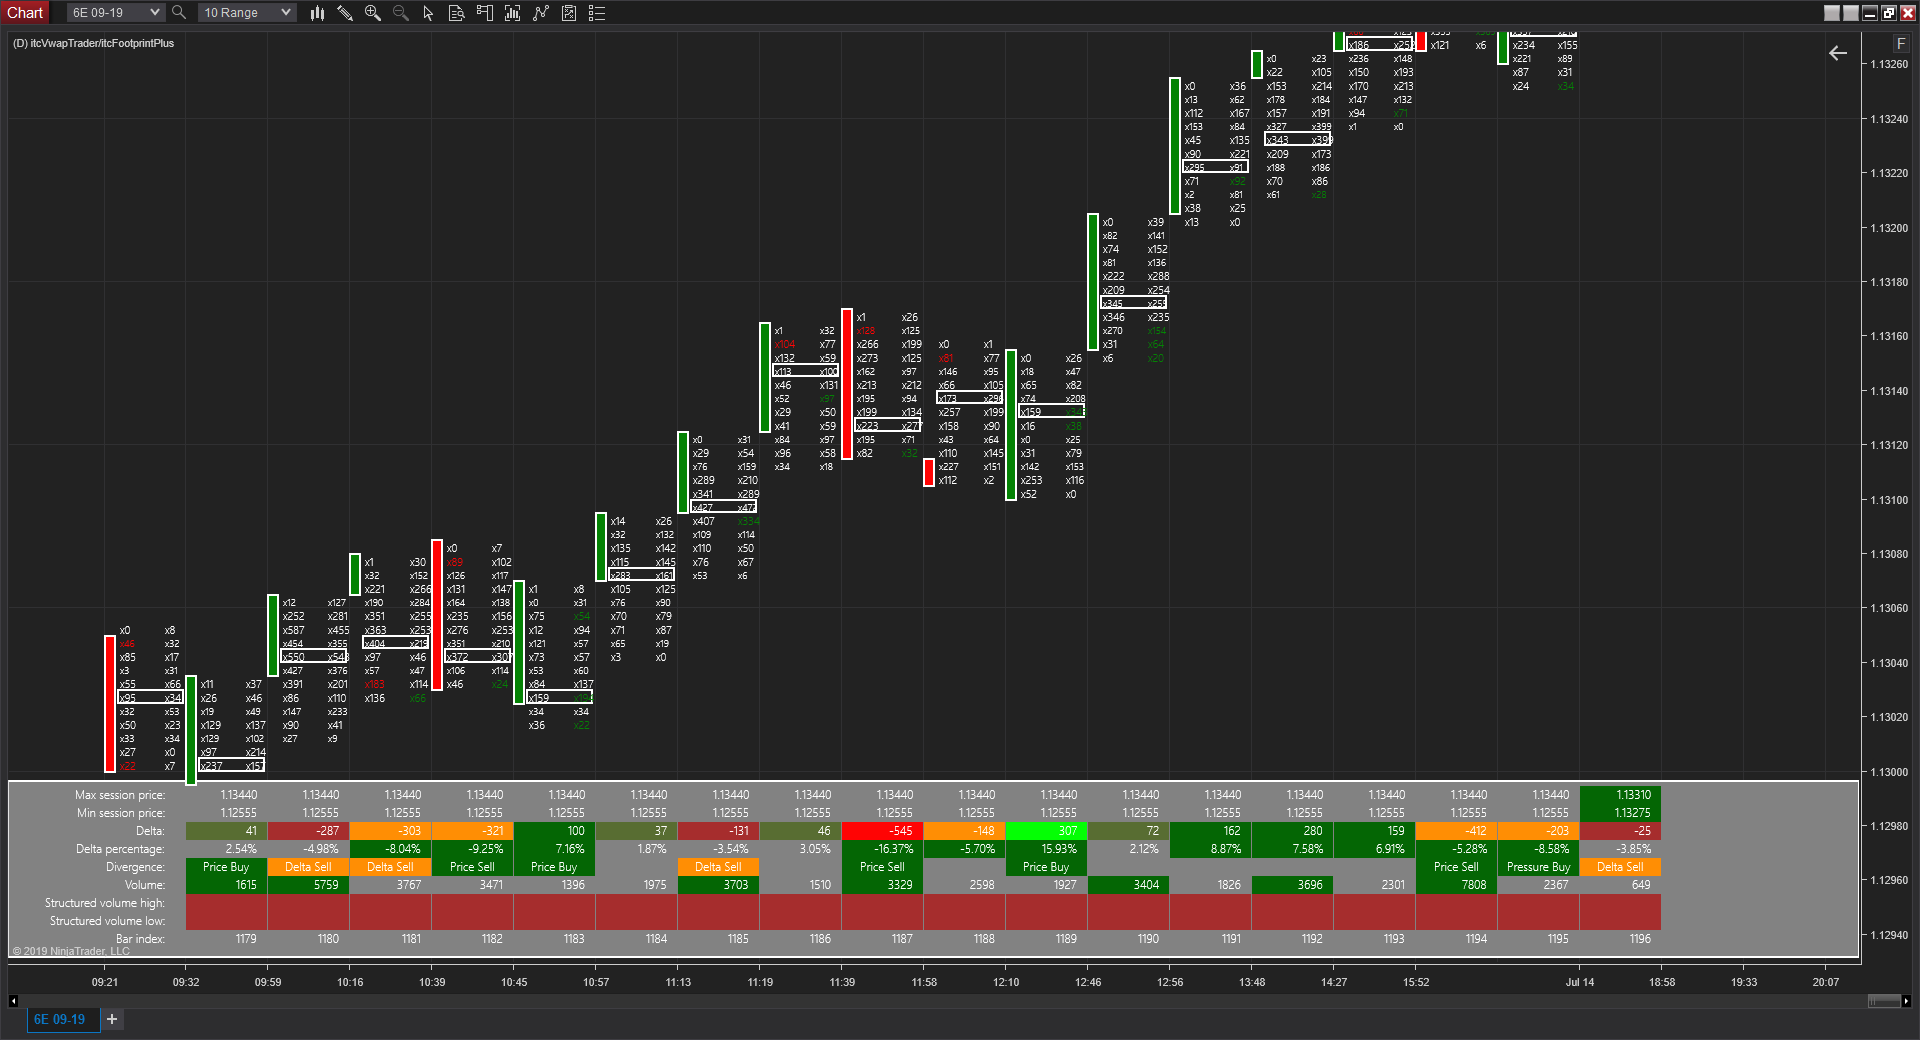 Metatrader 4 Bot Documentation Ninjatrader 8 El Gaucho